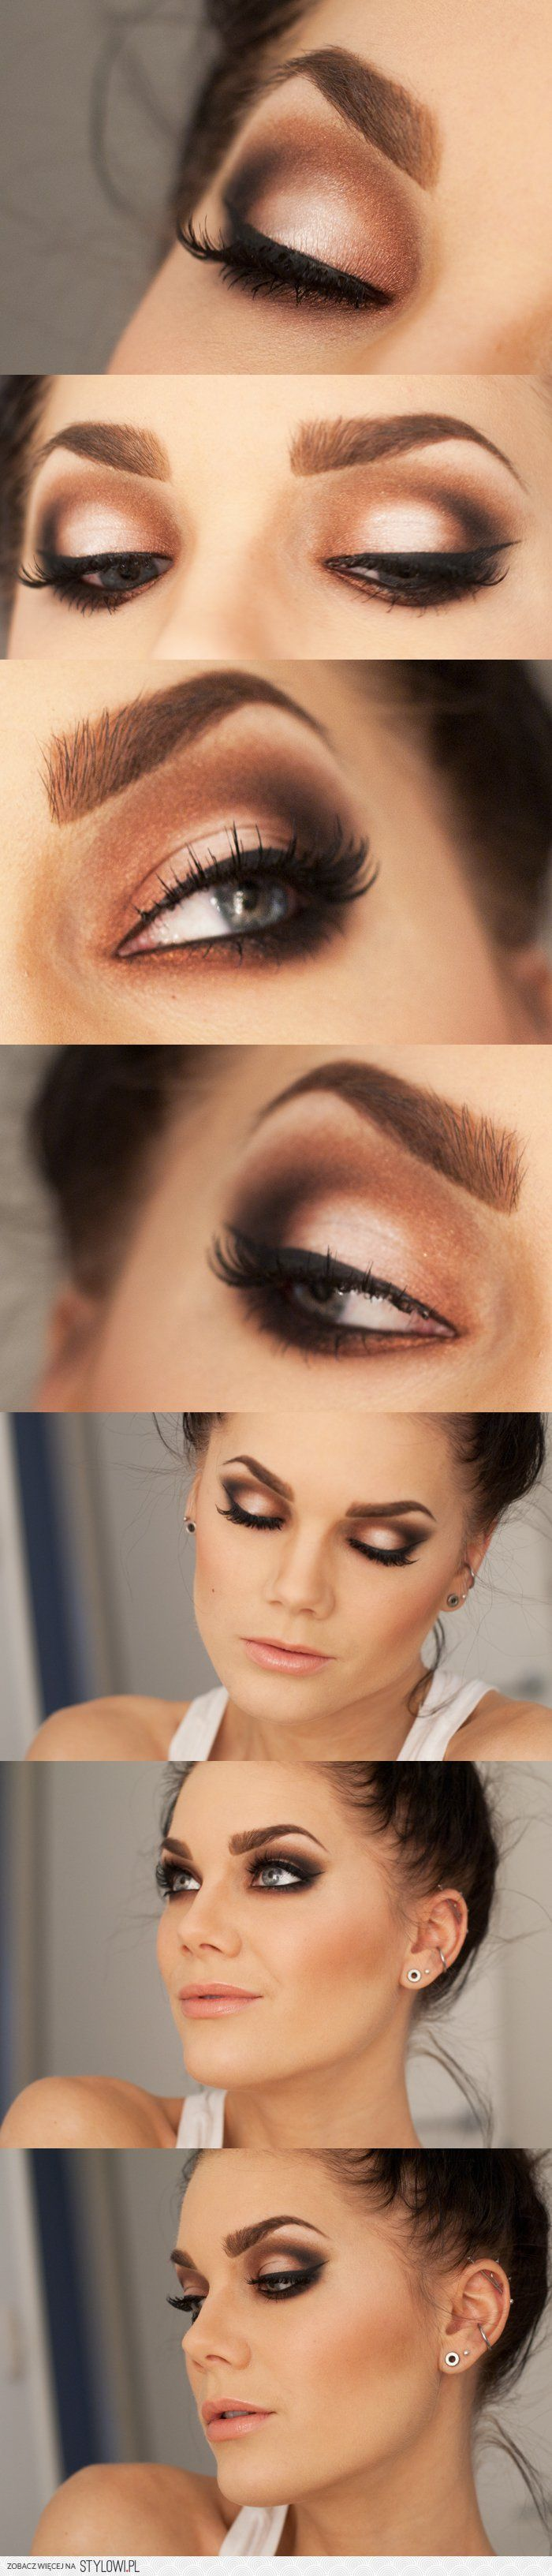 Smokey natural eye with white glow in the centre - lovely!